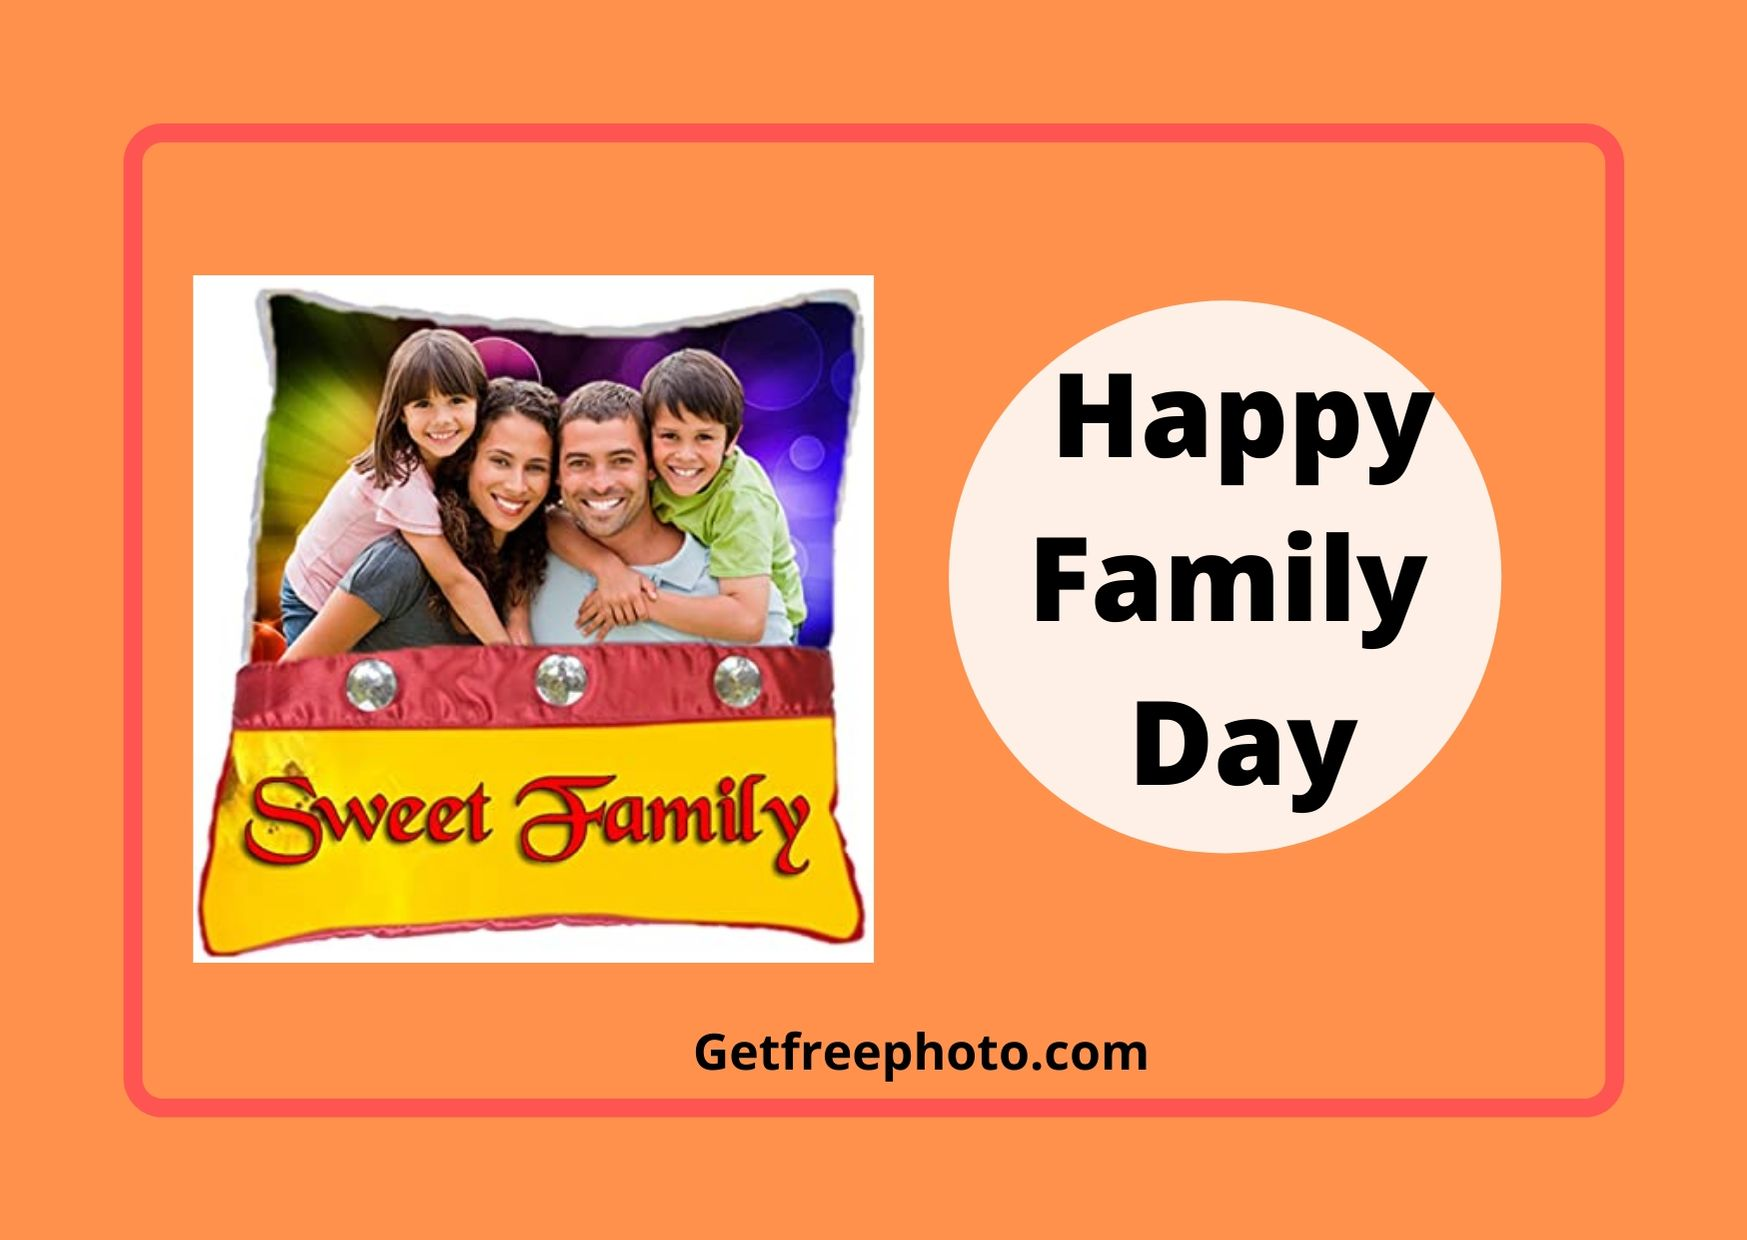 Wish you Happy Family Day Image